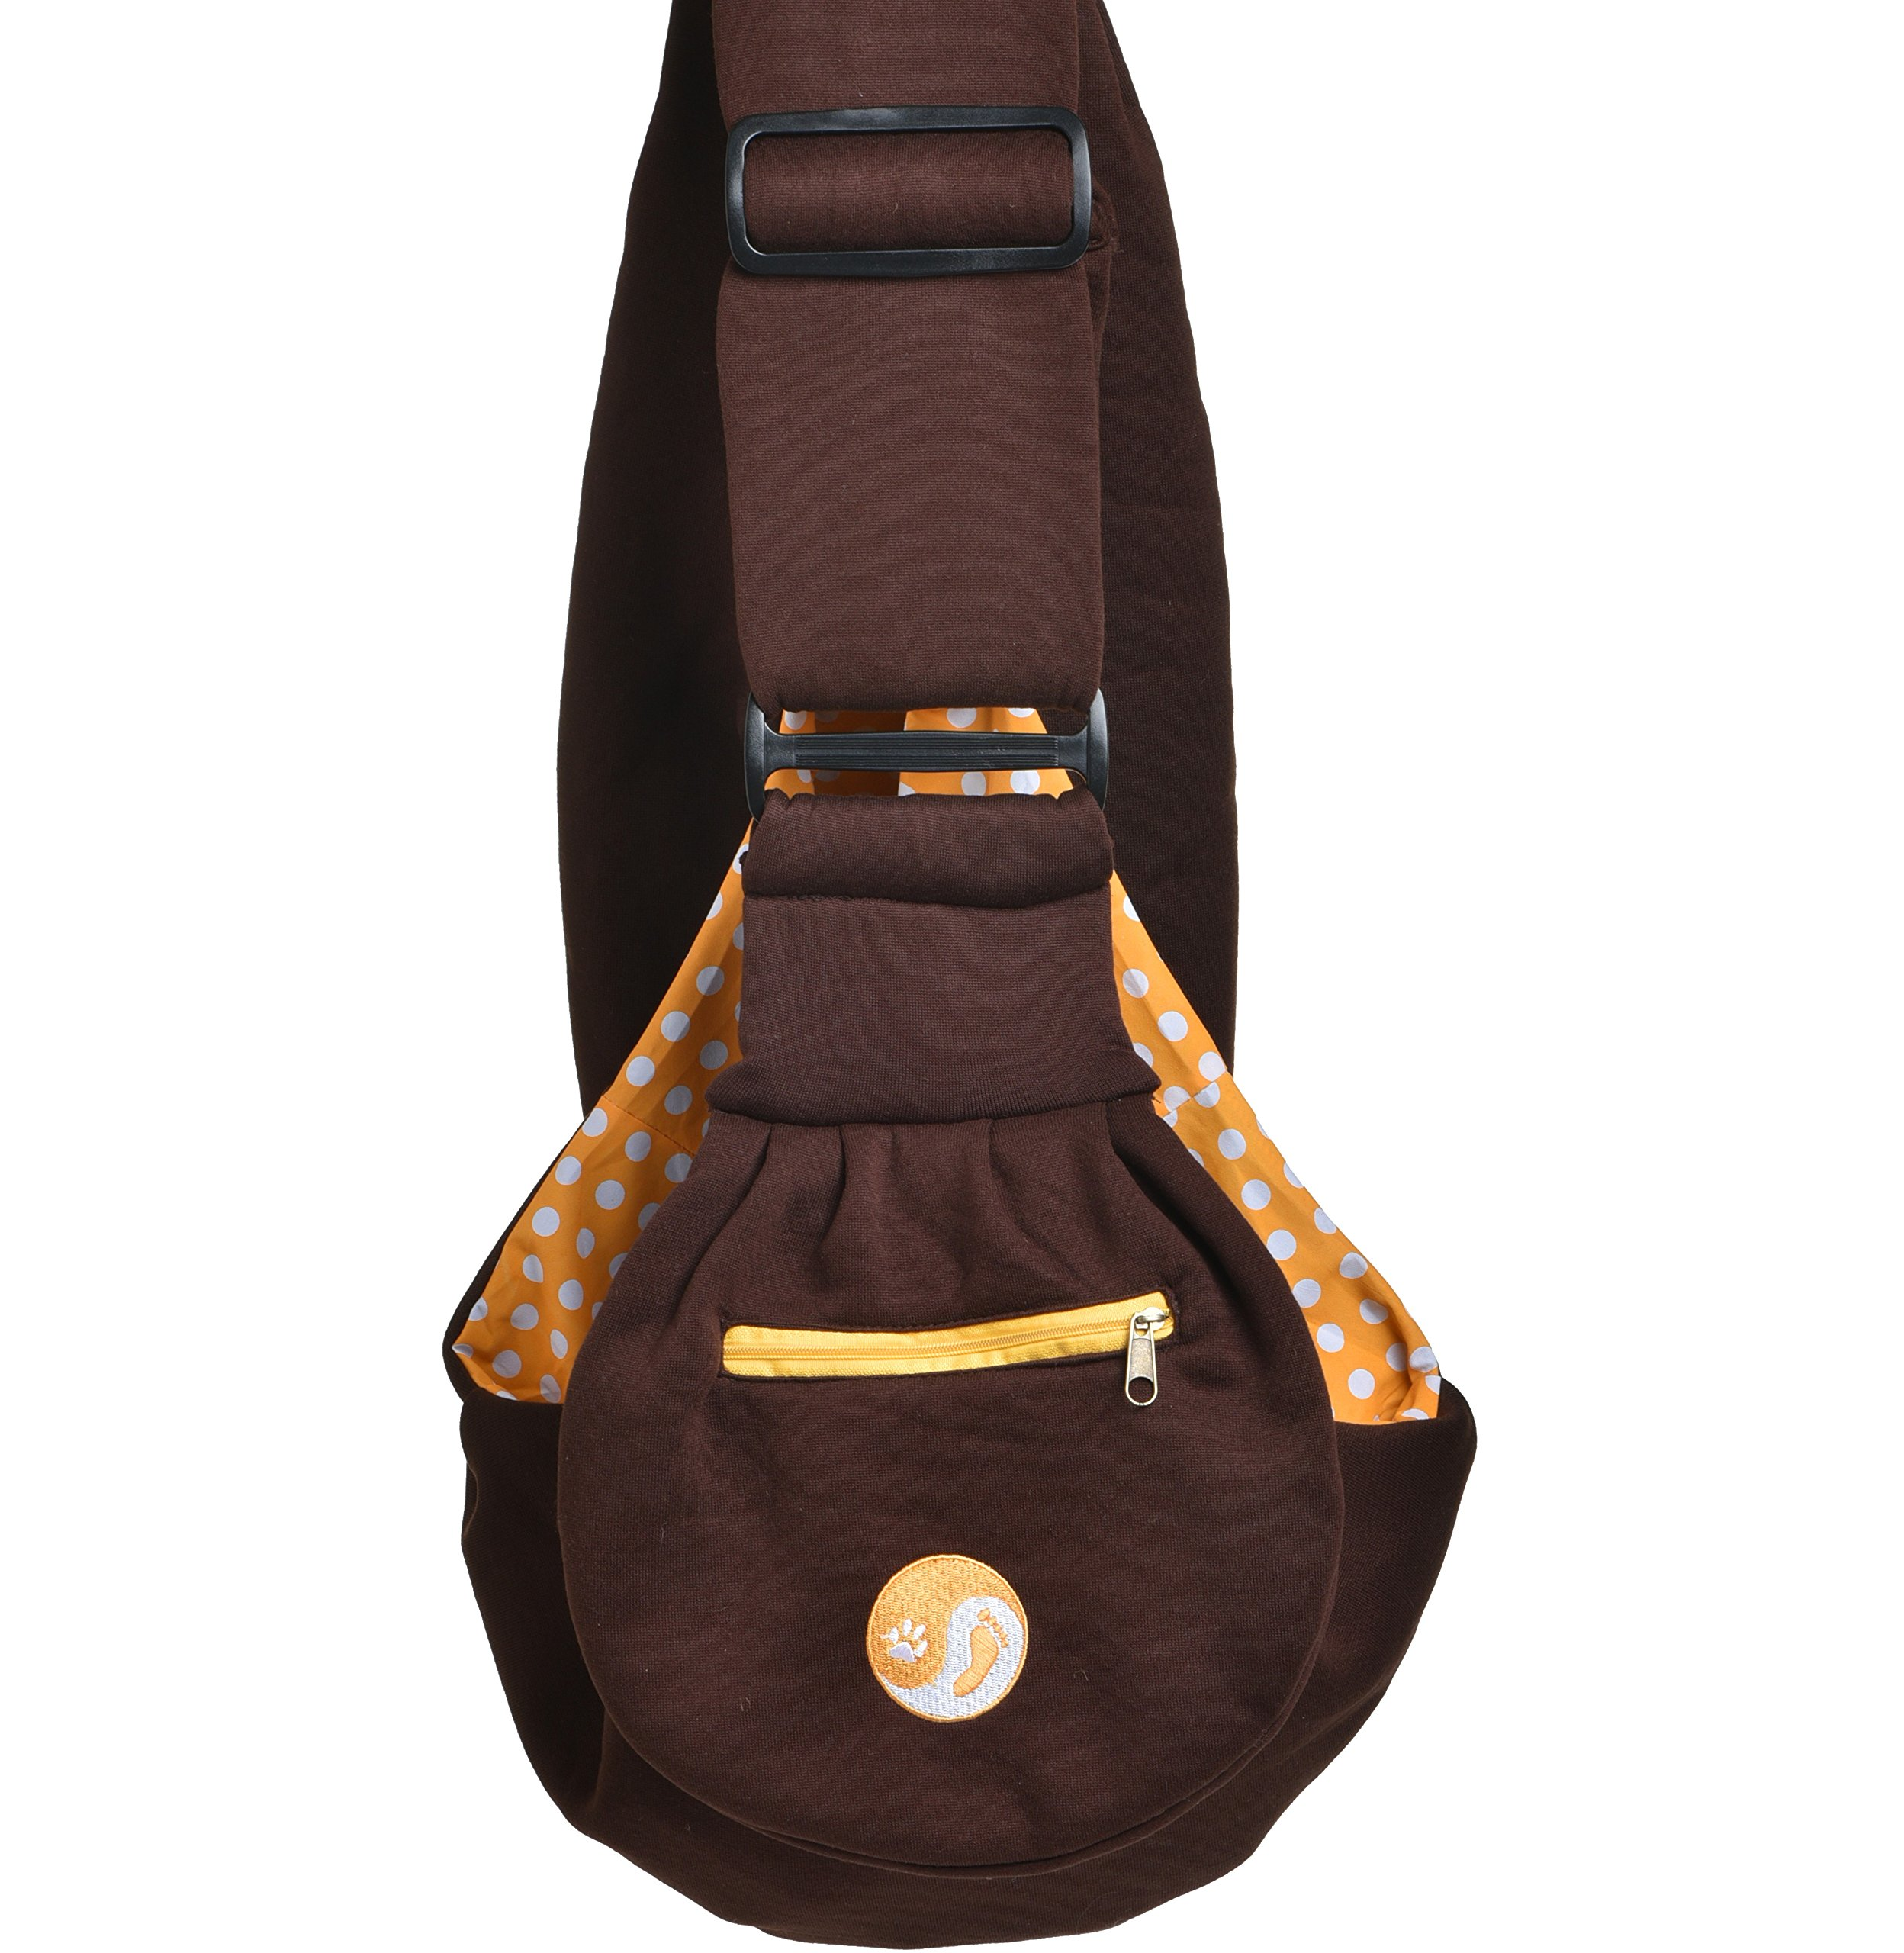 Timetuu adjustable handsfree dog carrier sling with unique buckles, zippered pocket and water proof bag for small dogs and puppies. Reversible double sided ultra soft brown tote fits all heights